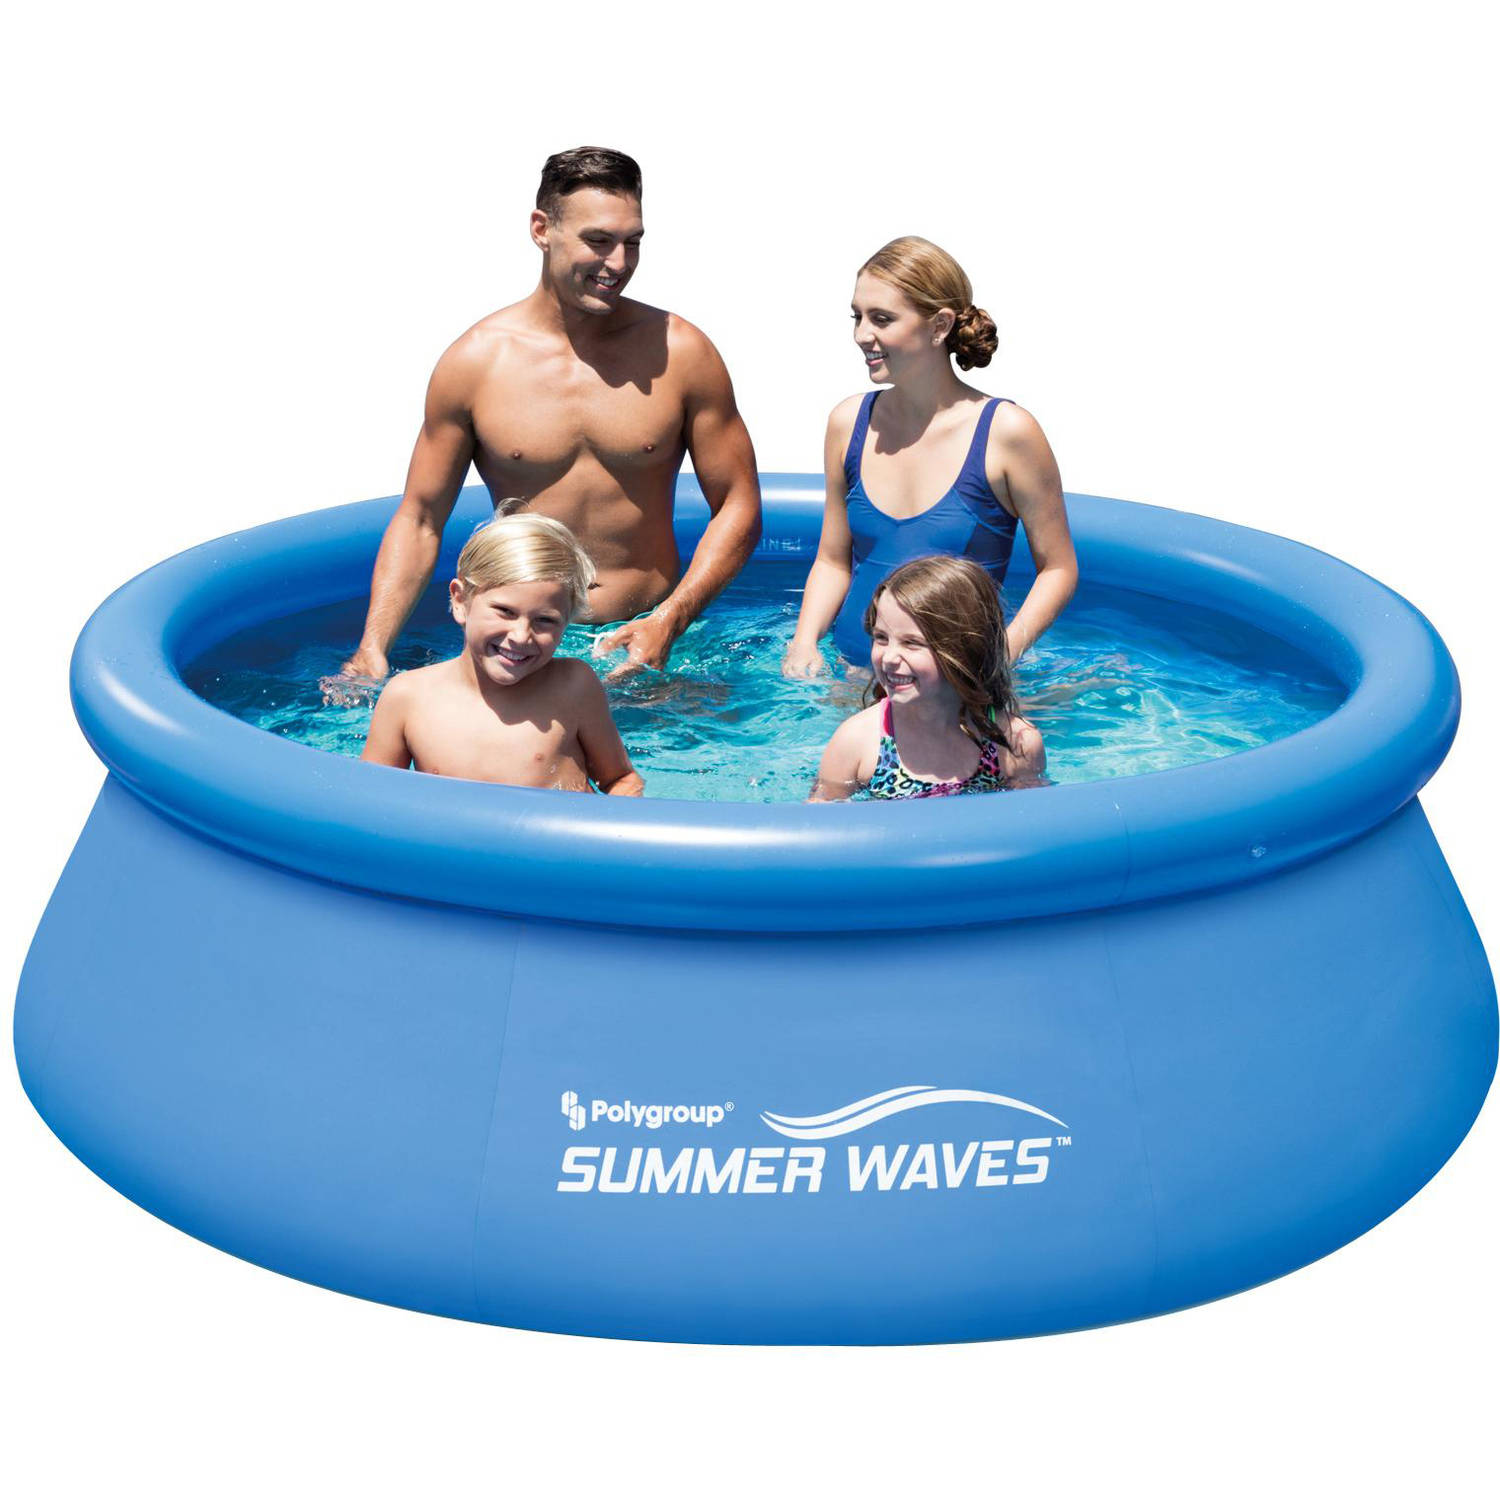 "Summer Waves 8' x 30"" Quick Set Round Above Ground Swimming Pool with Filter Pump System"